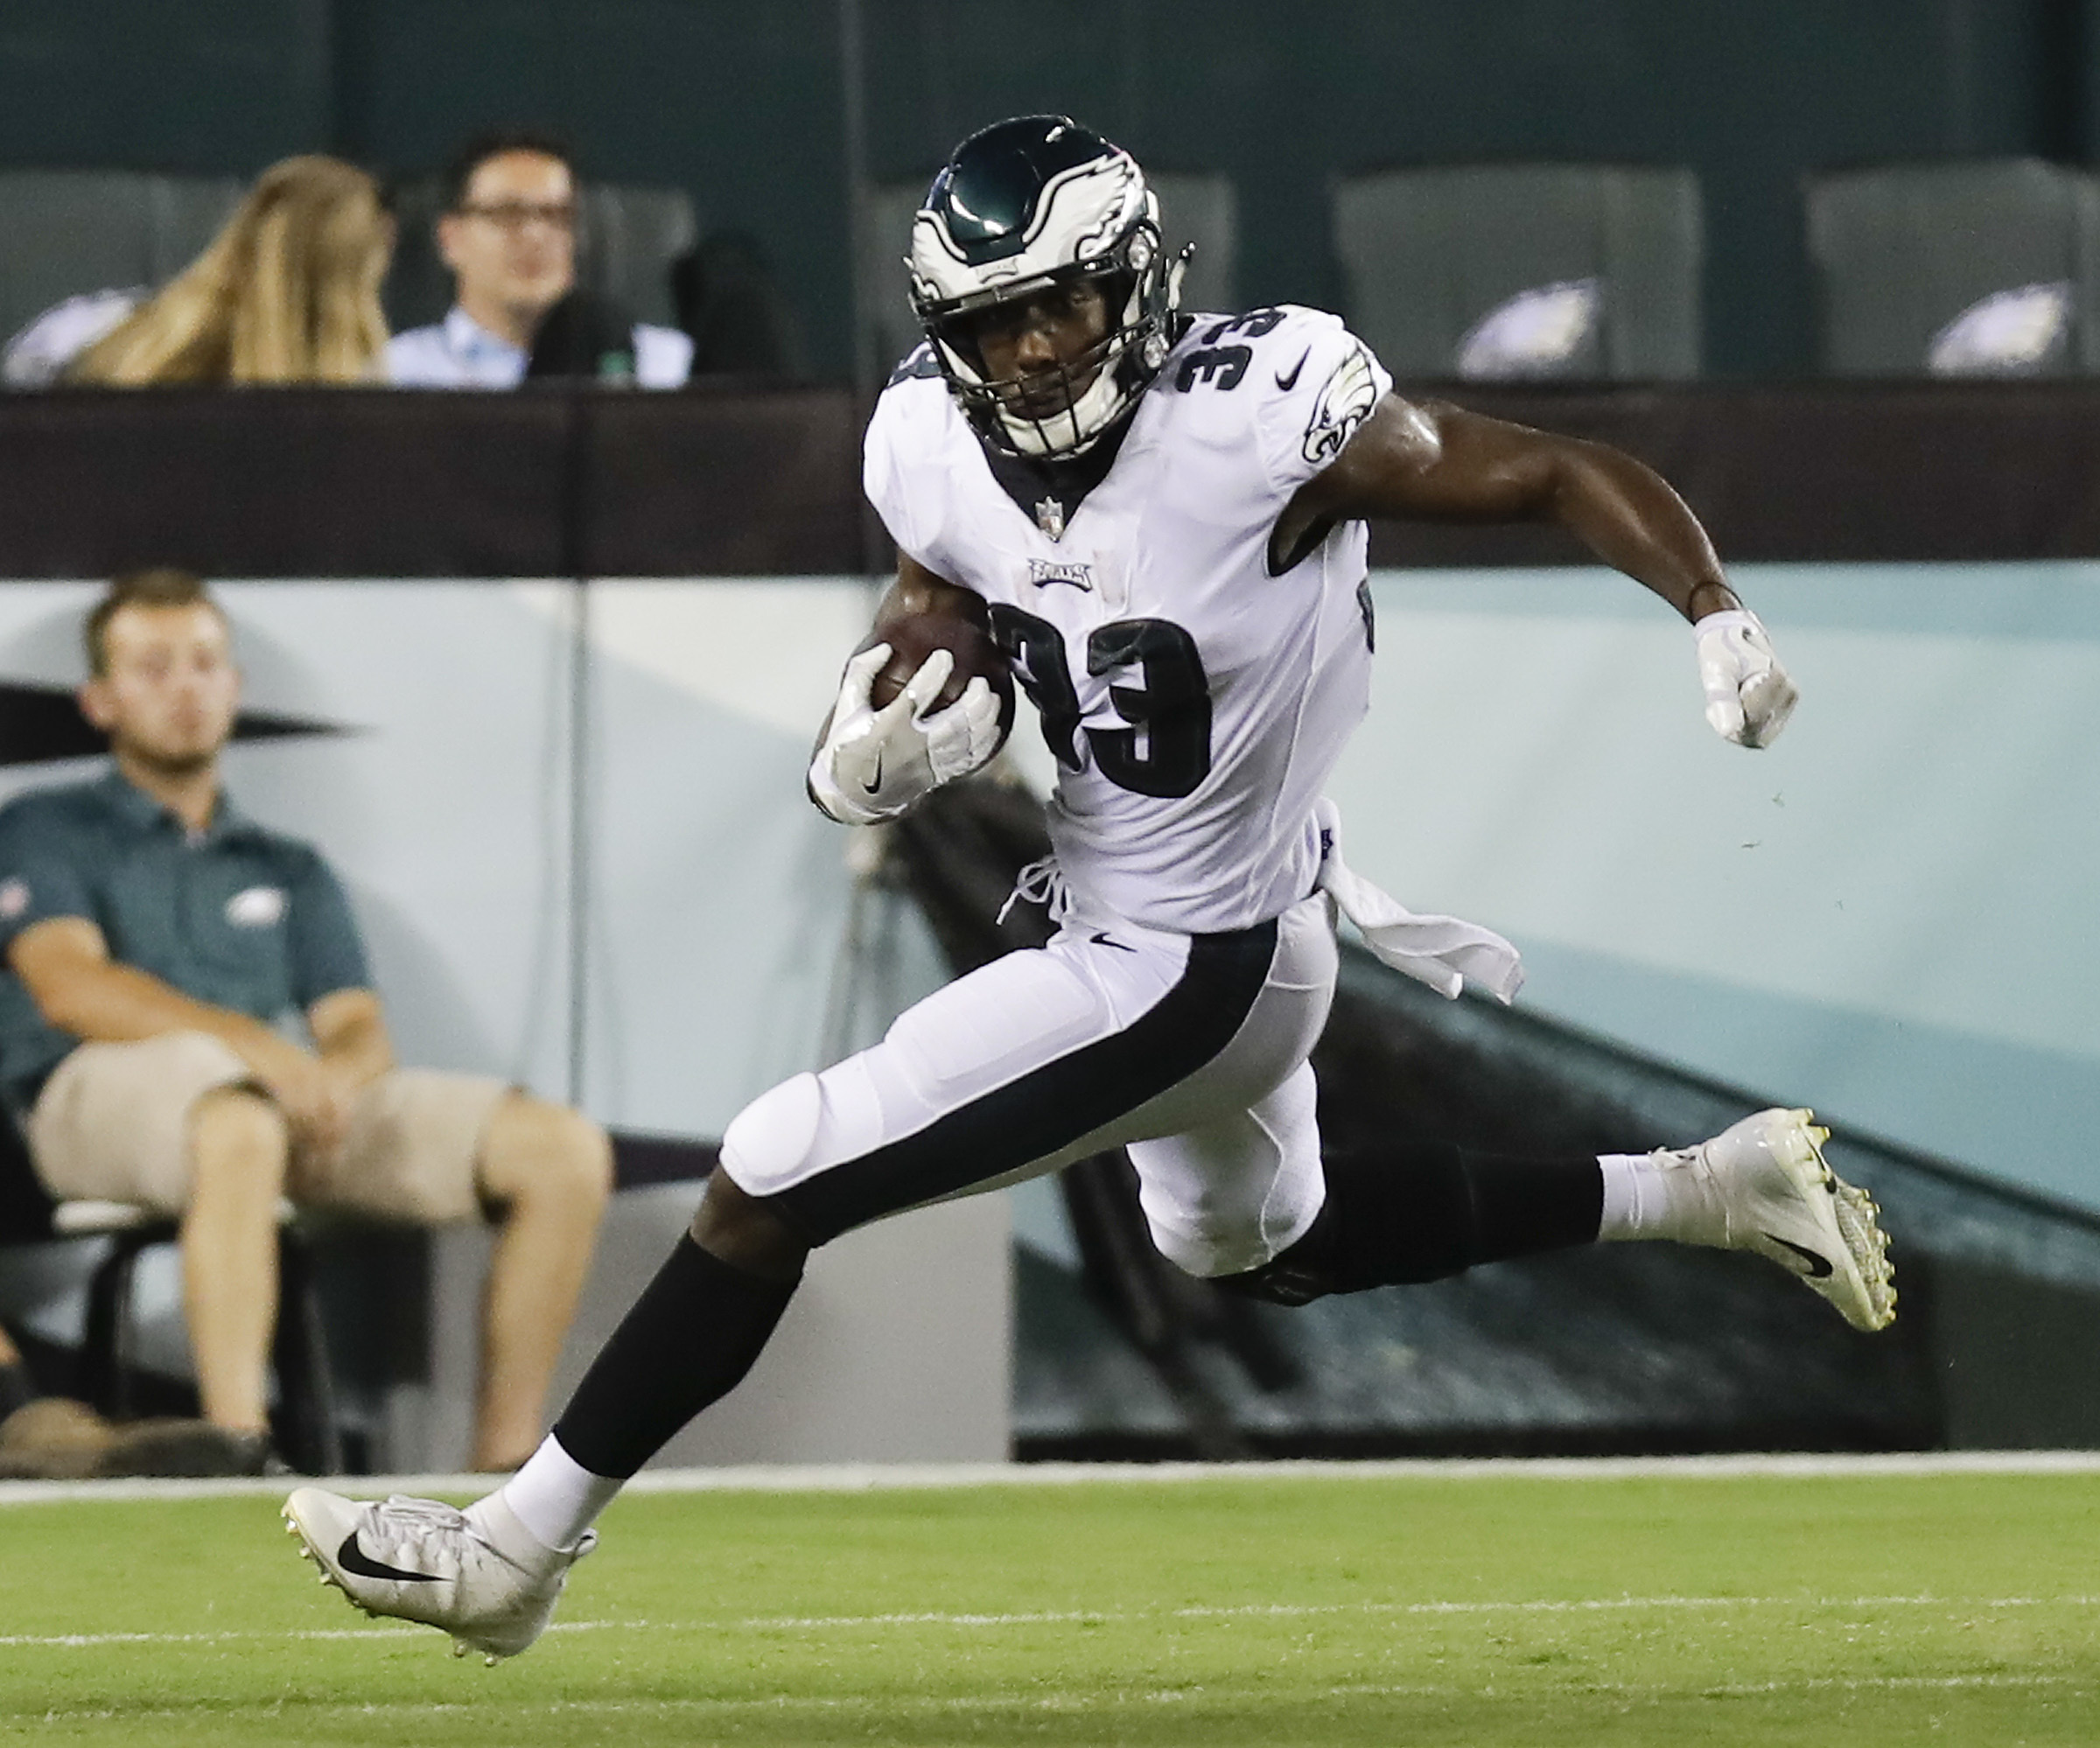 Eagles running back Josh Adams carries the football against the Steelers.